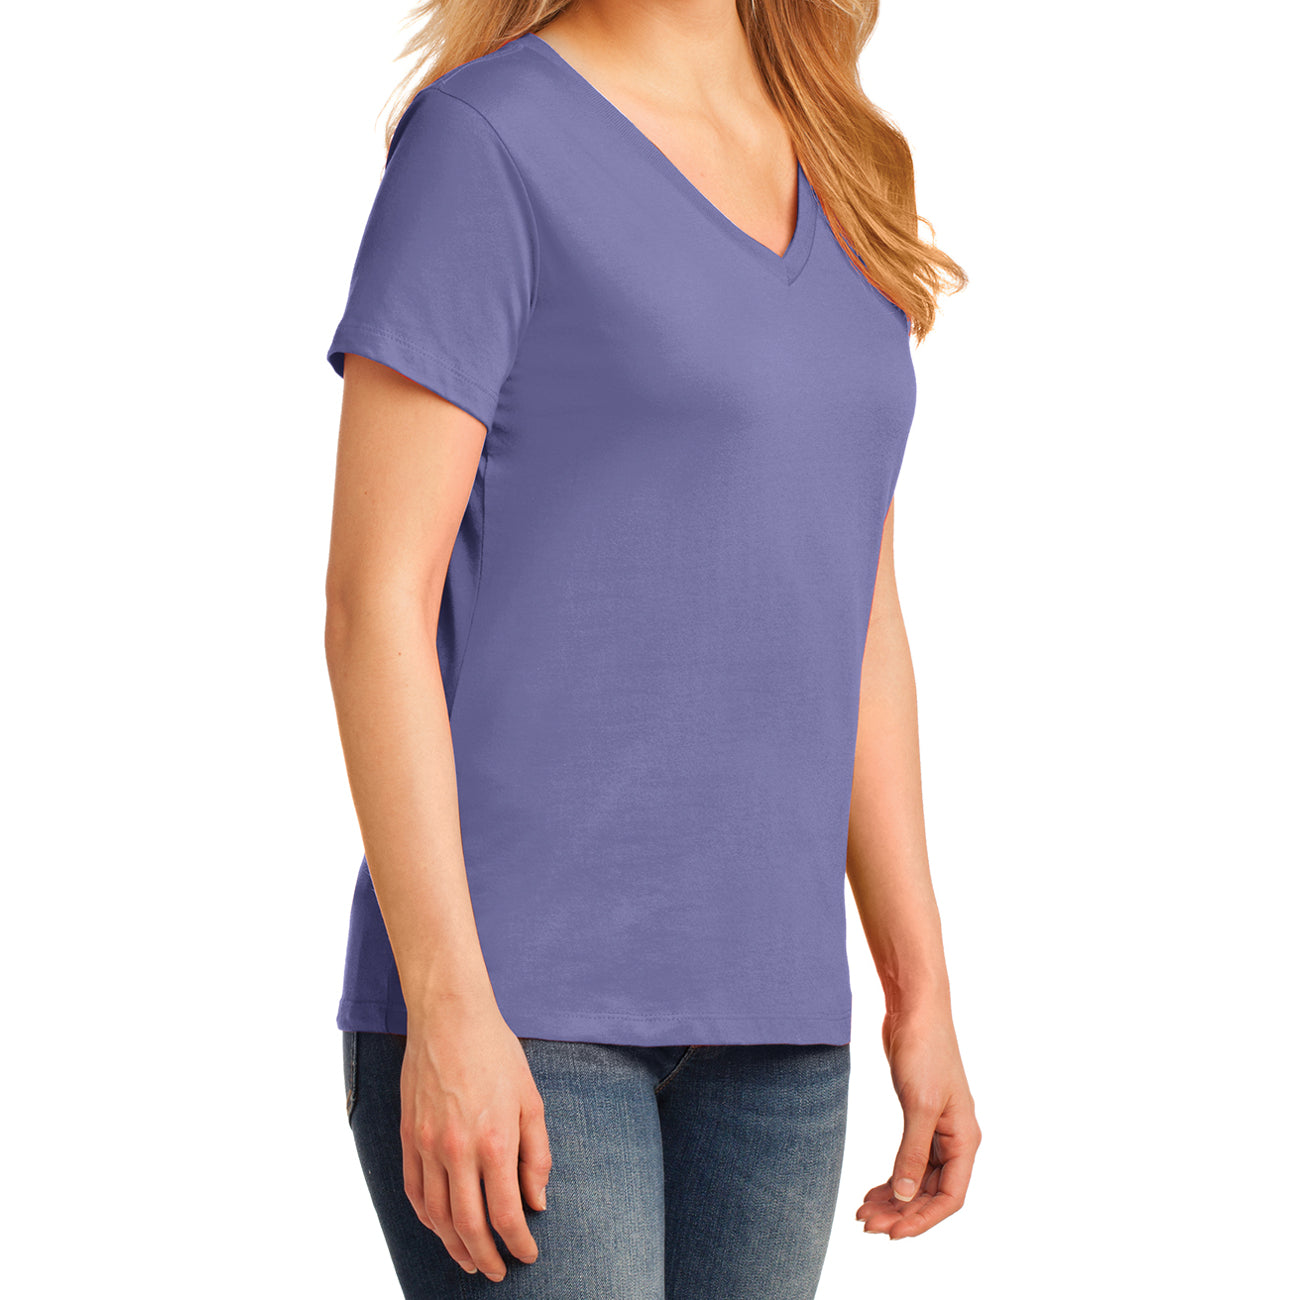 Women's Core Cotton V-Neck Tee - Violet - Side